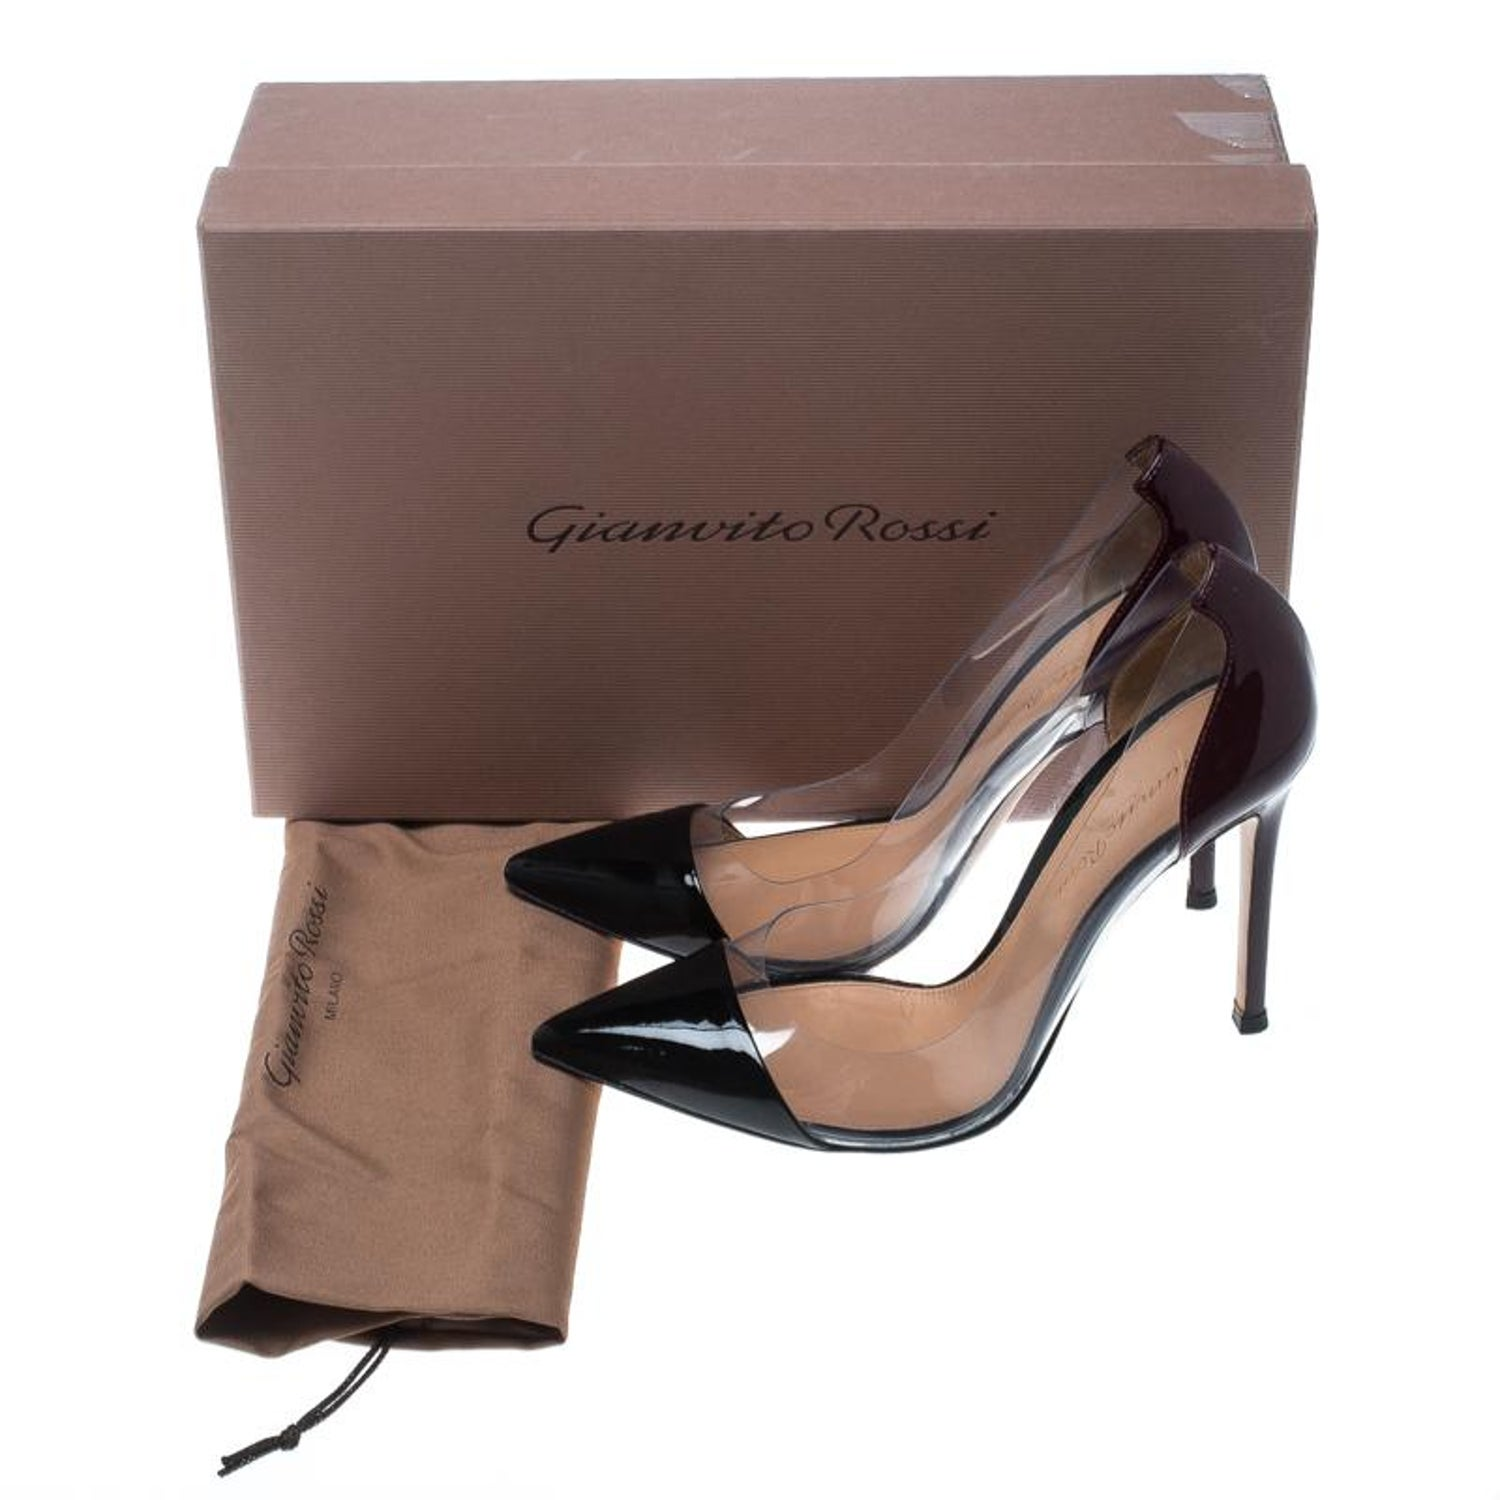 f67bab8b847 Gianvito Rossi Two Tone Patent Leather and PVC Plexi Pumps Size 36 at  1stdibs